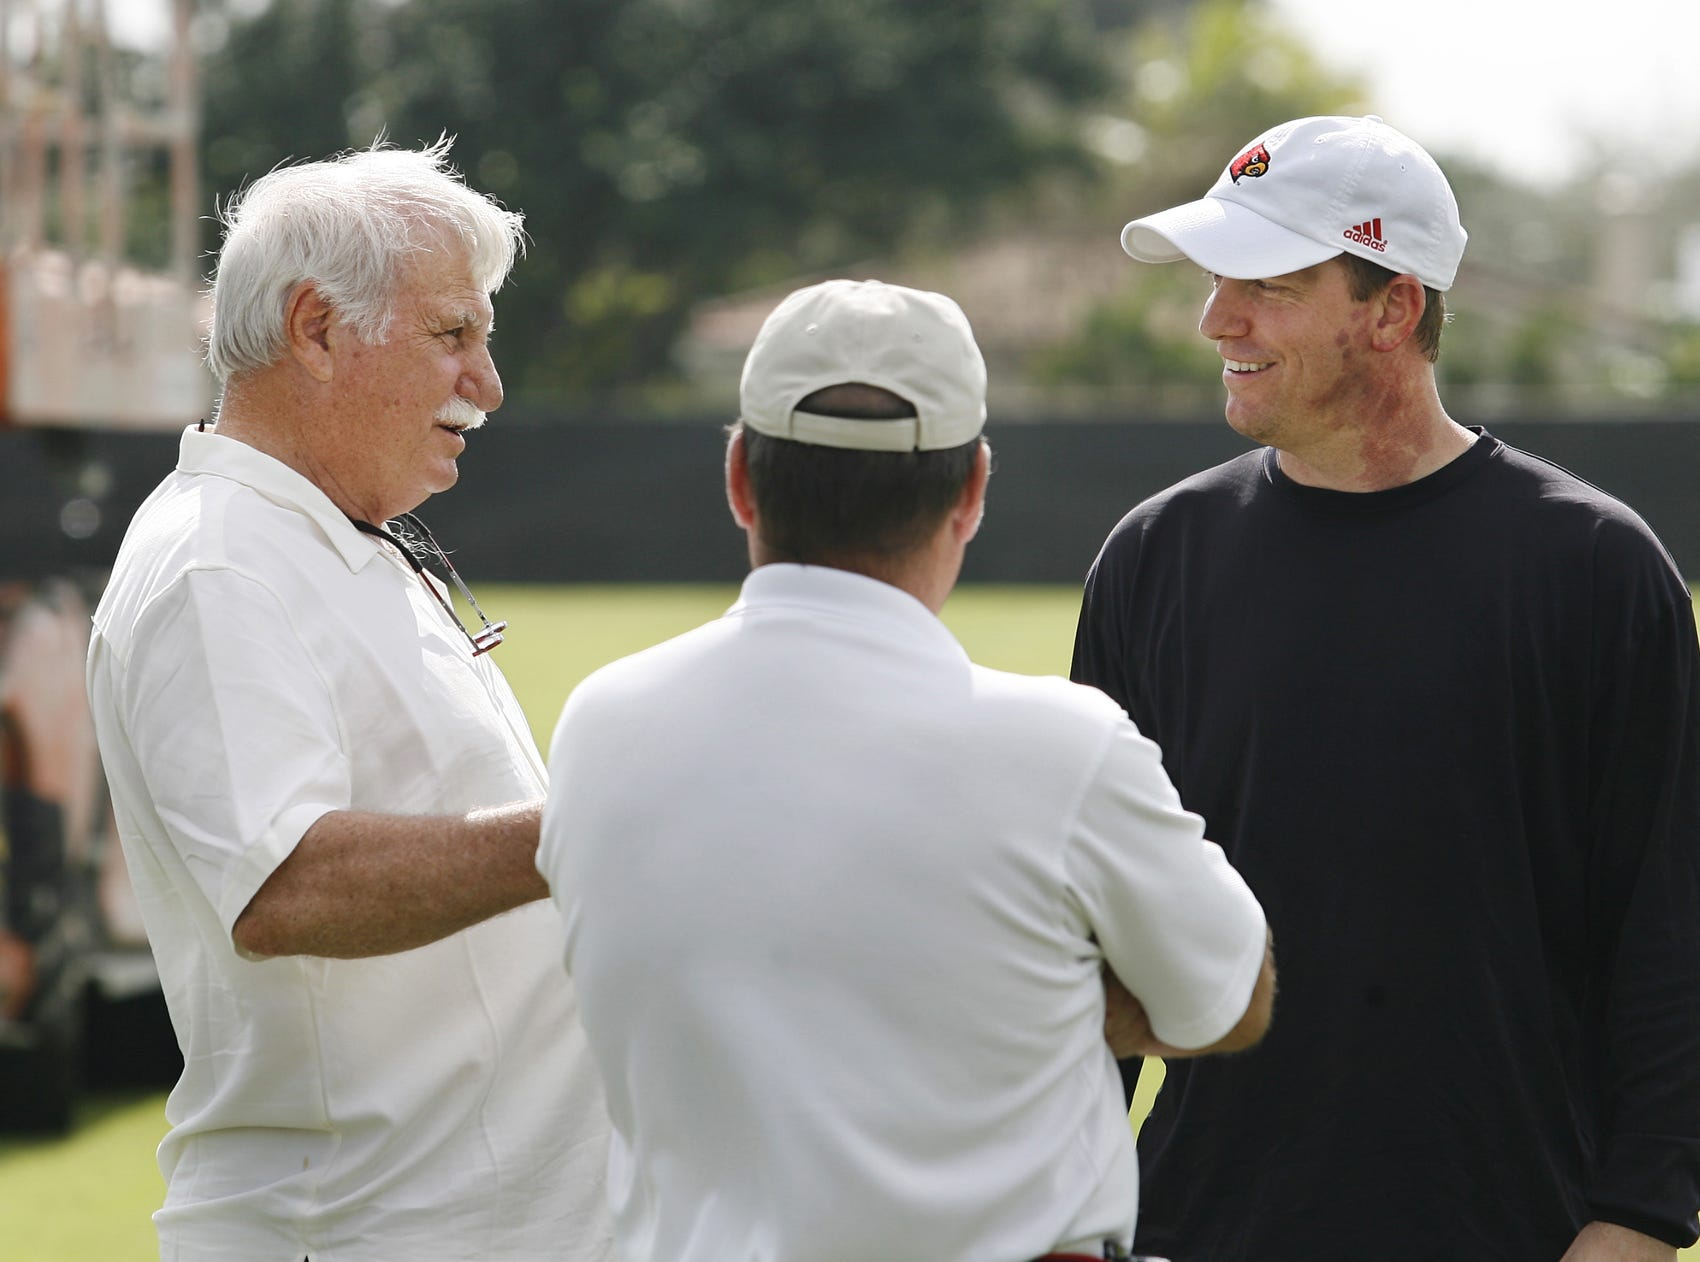 Former UofL head football coach Howard Schnellenberger, left, chatted with his former QB and current UofL QB's coach Jeff Brohm, right, after UofL practiced at the Barry University in Miami Shores, Florida.  Howard's former assistant coach at UofL Kurt VanValkenburgh, center, looked on.  The Cardinals are preparing for their upcoming Orange Bowl appearance on Jan. 2._To go with a Brian Bennett story.